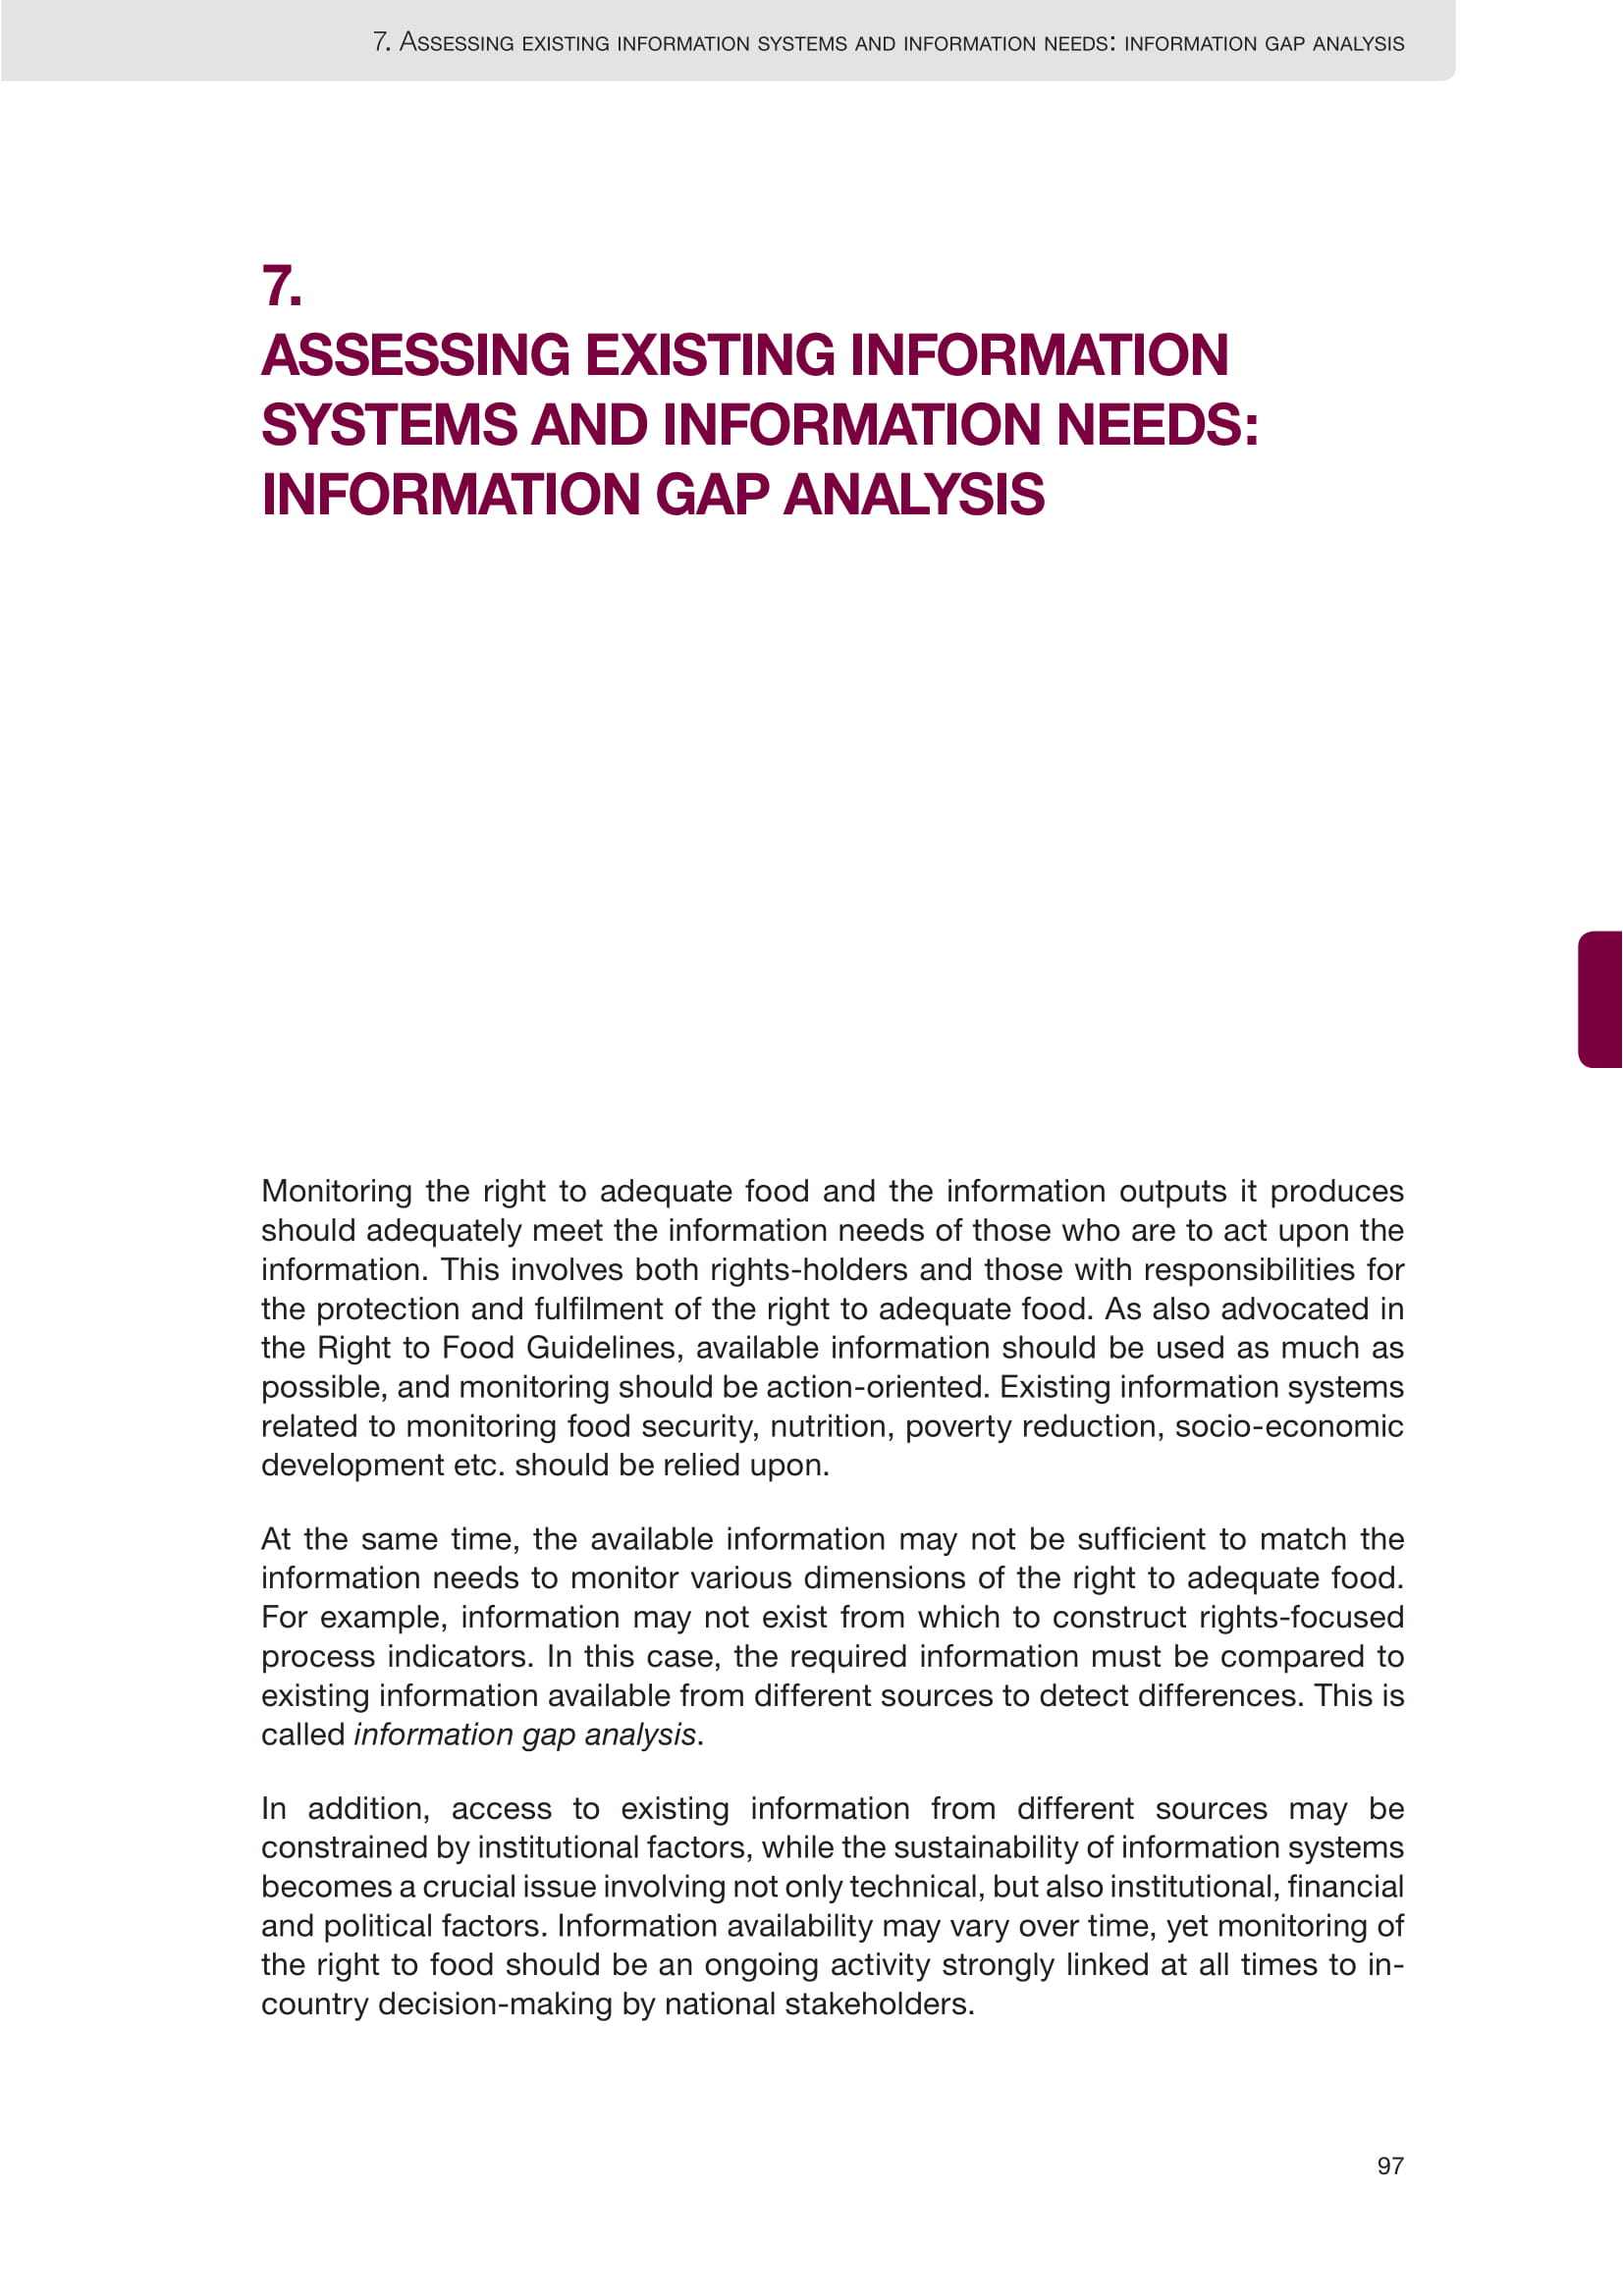 assessing existing information systems and information needs information gap analysis example 01